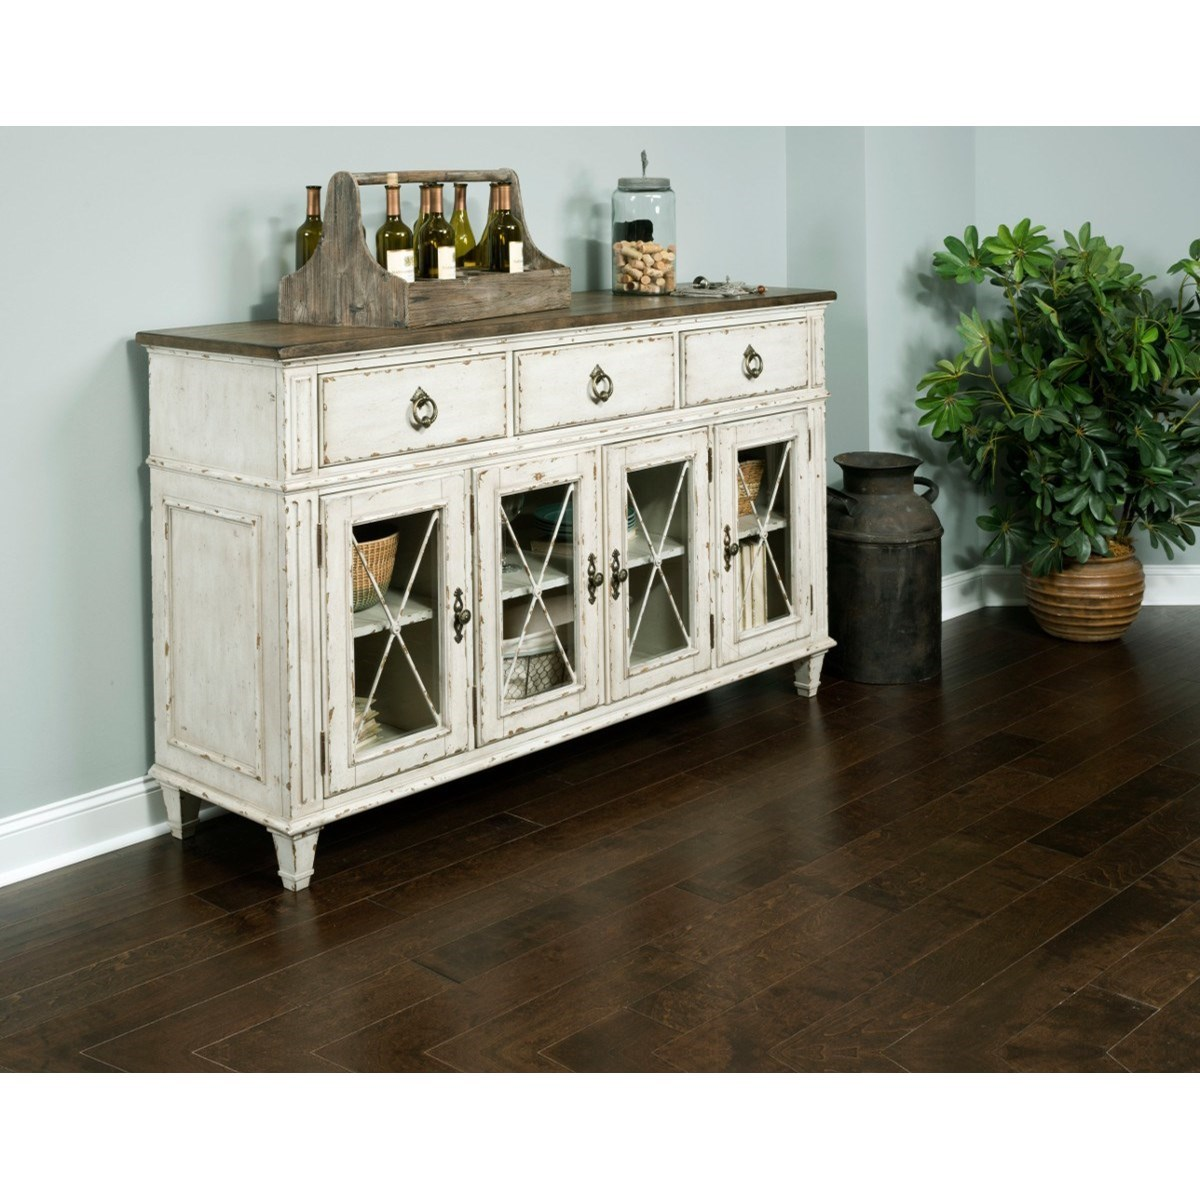 South gate sideboard with adjustable shelves morris home for Morris home